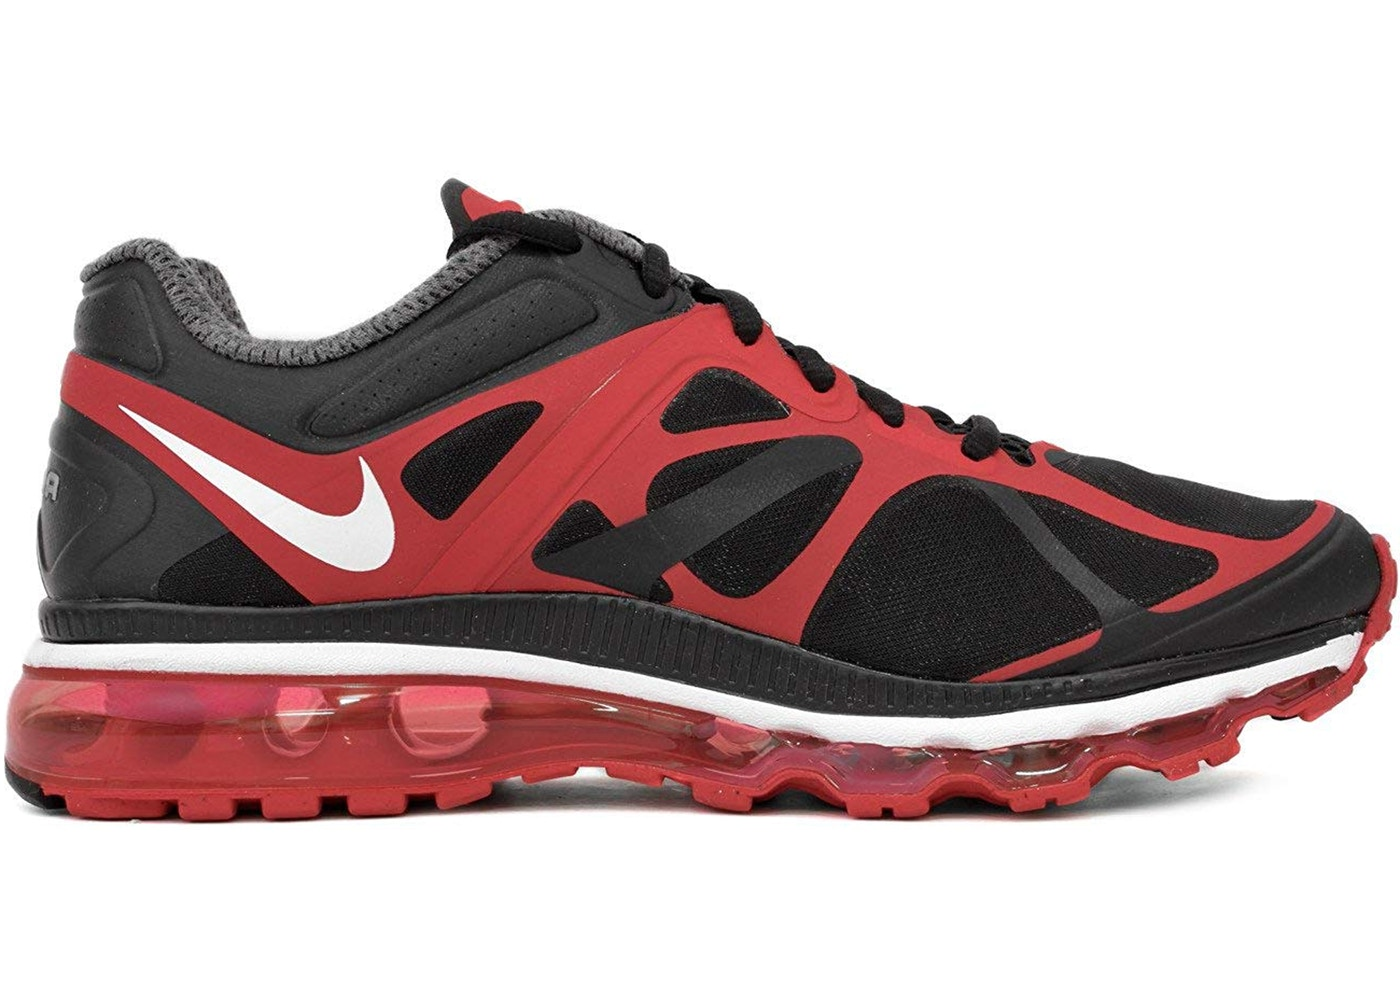 Nike Air Max 2012 Black Red 487982 016